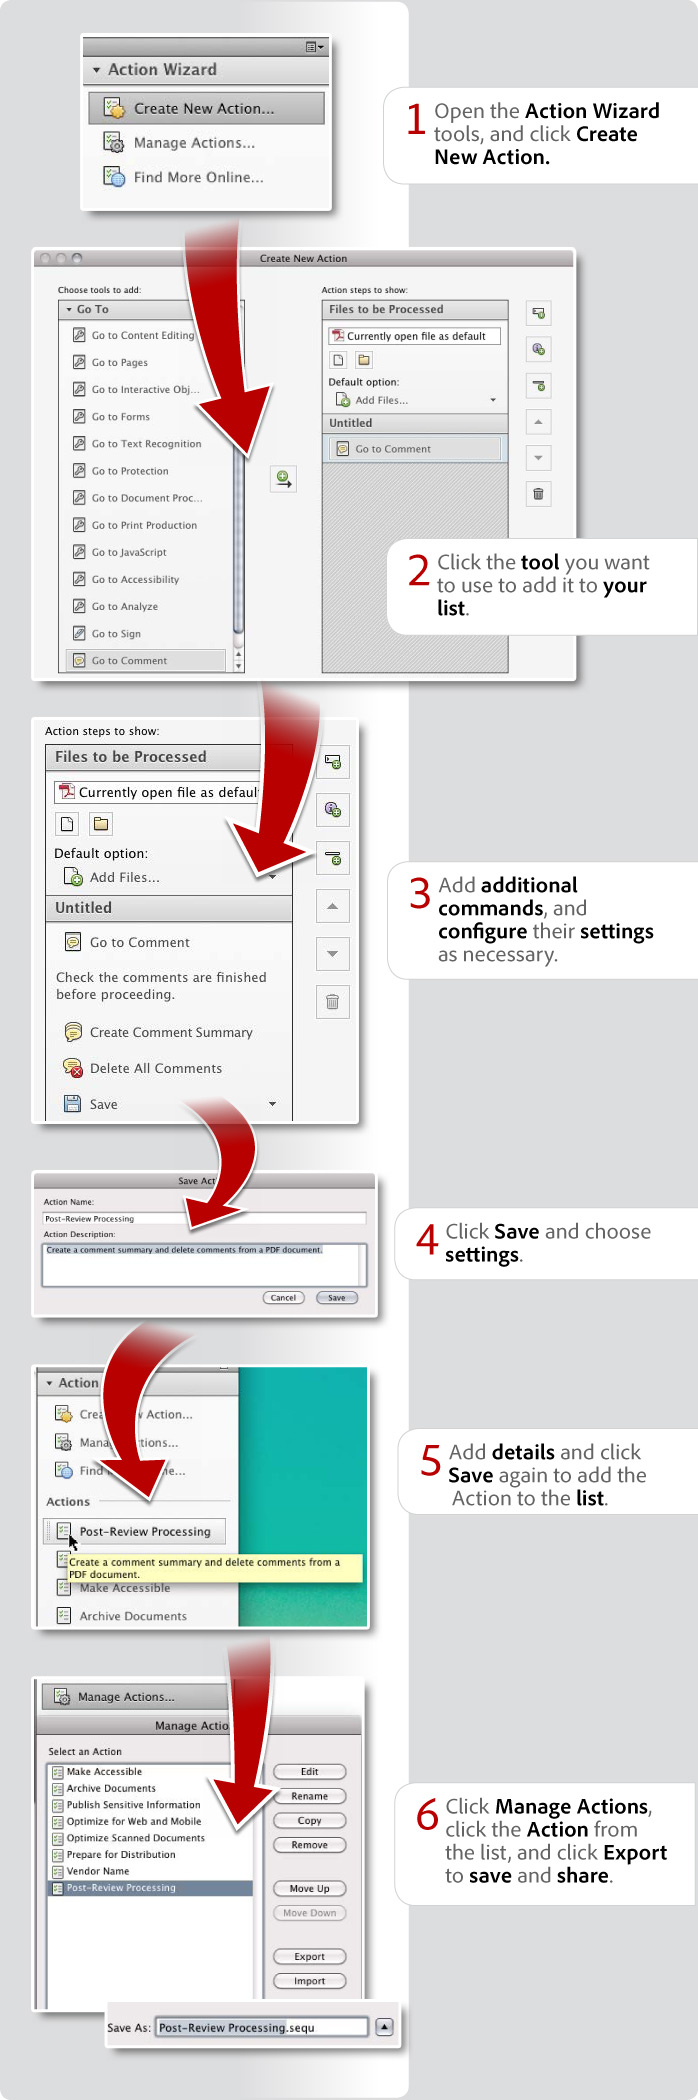 How to create and share Actions in Acrobat XI Pro